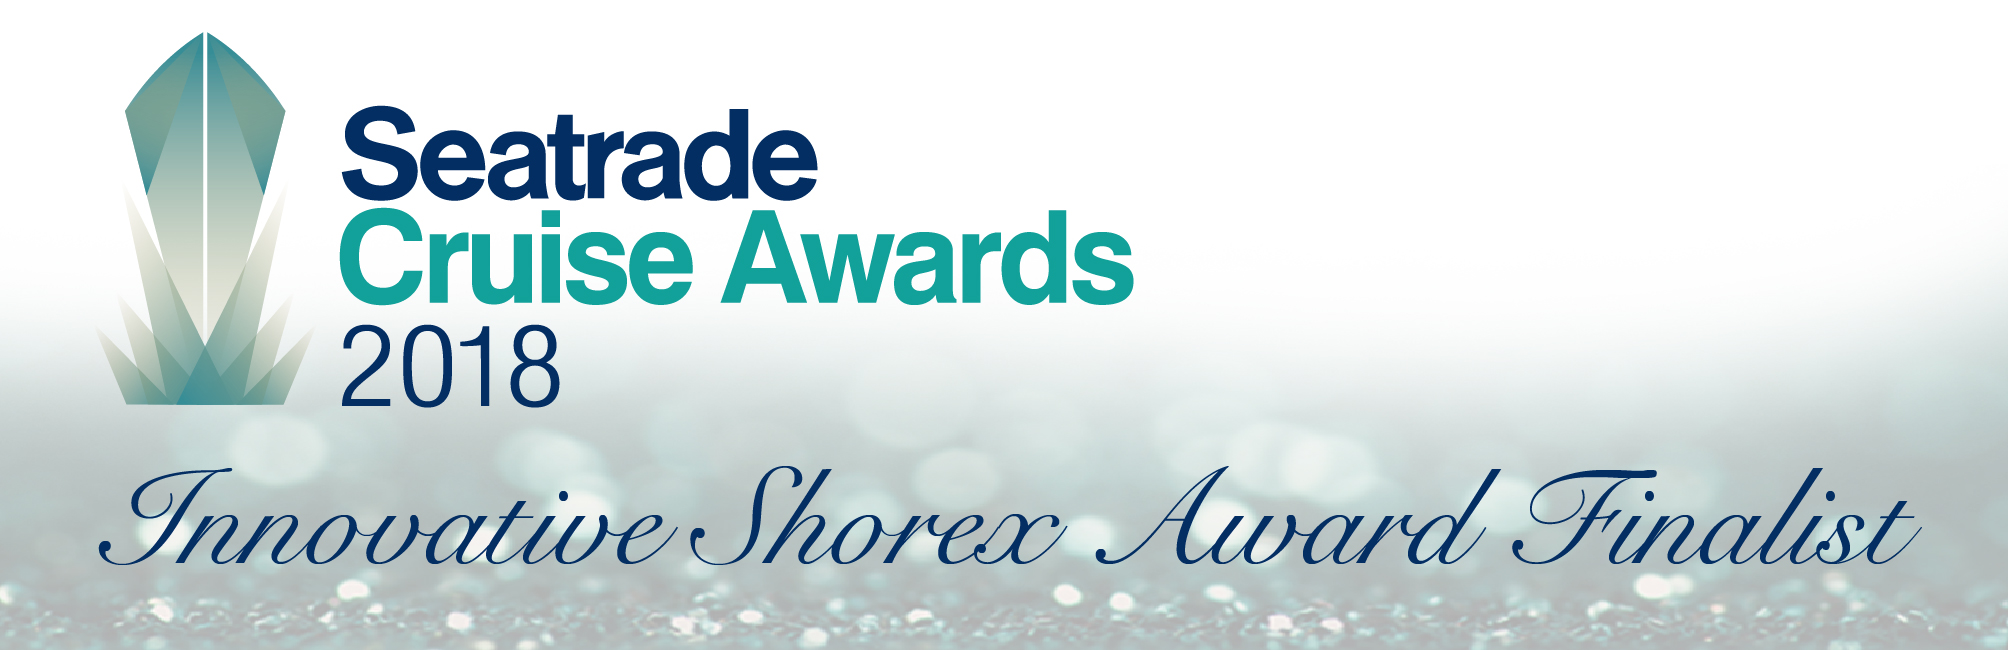 Innovative Shorex Finalist 2018